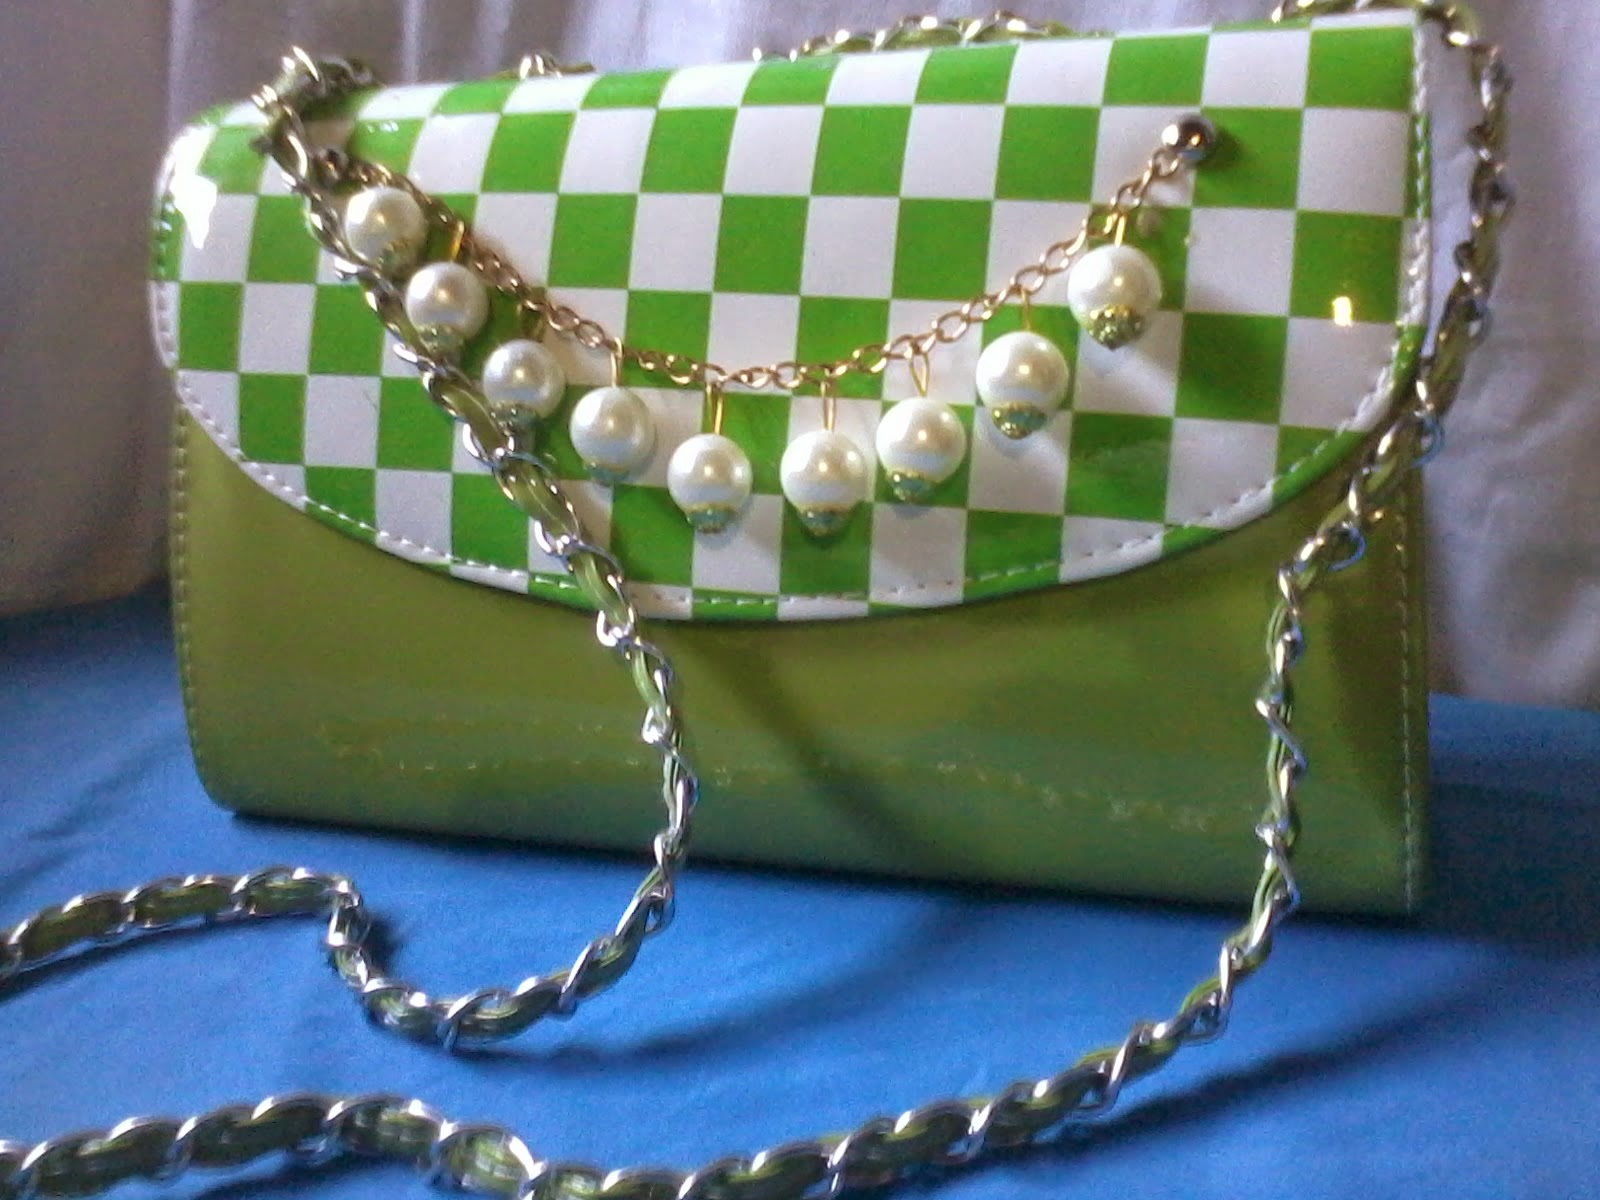 green handbag, green bag, pearl bag, beautiful handbag